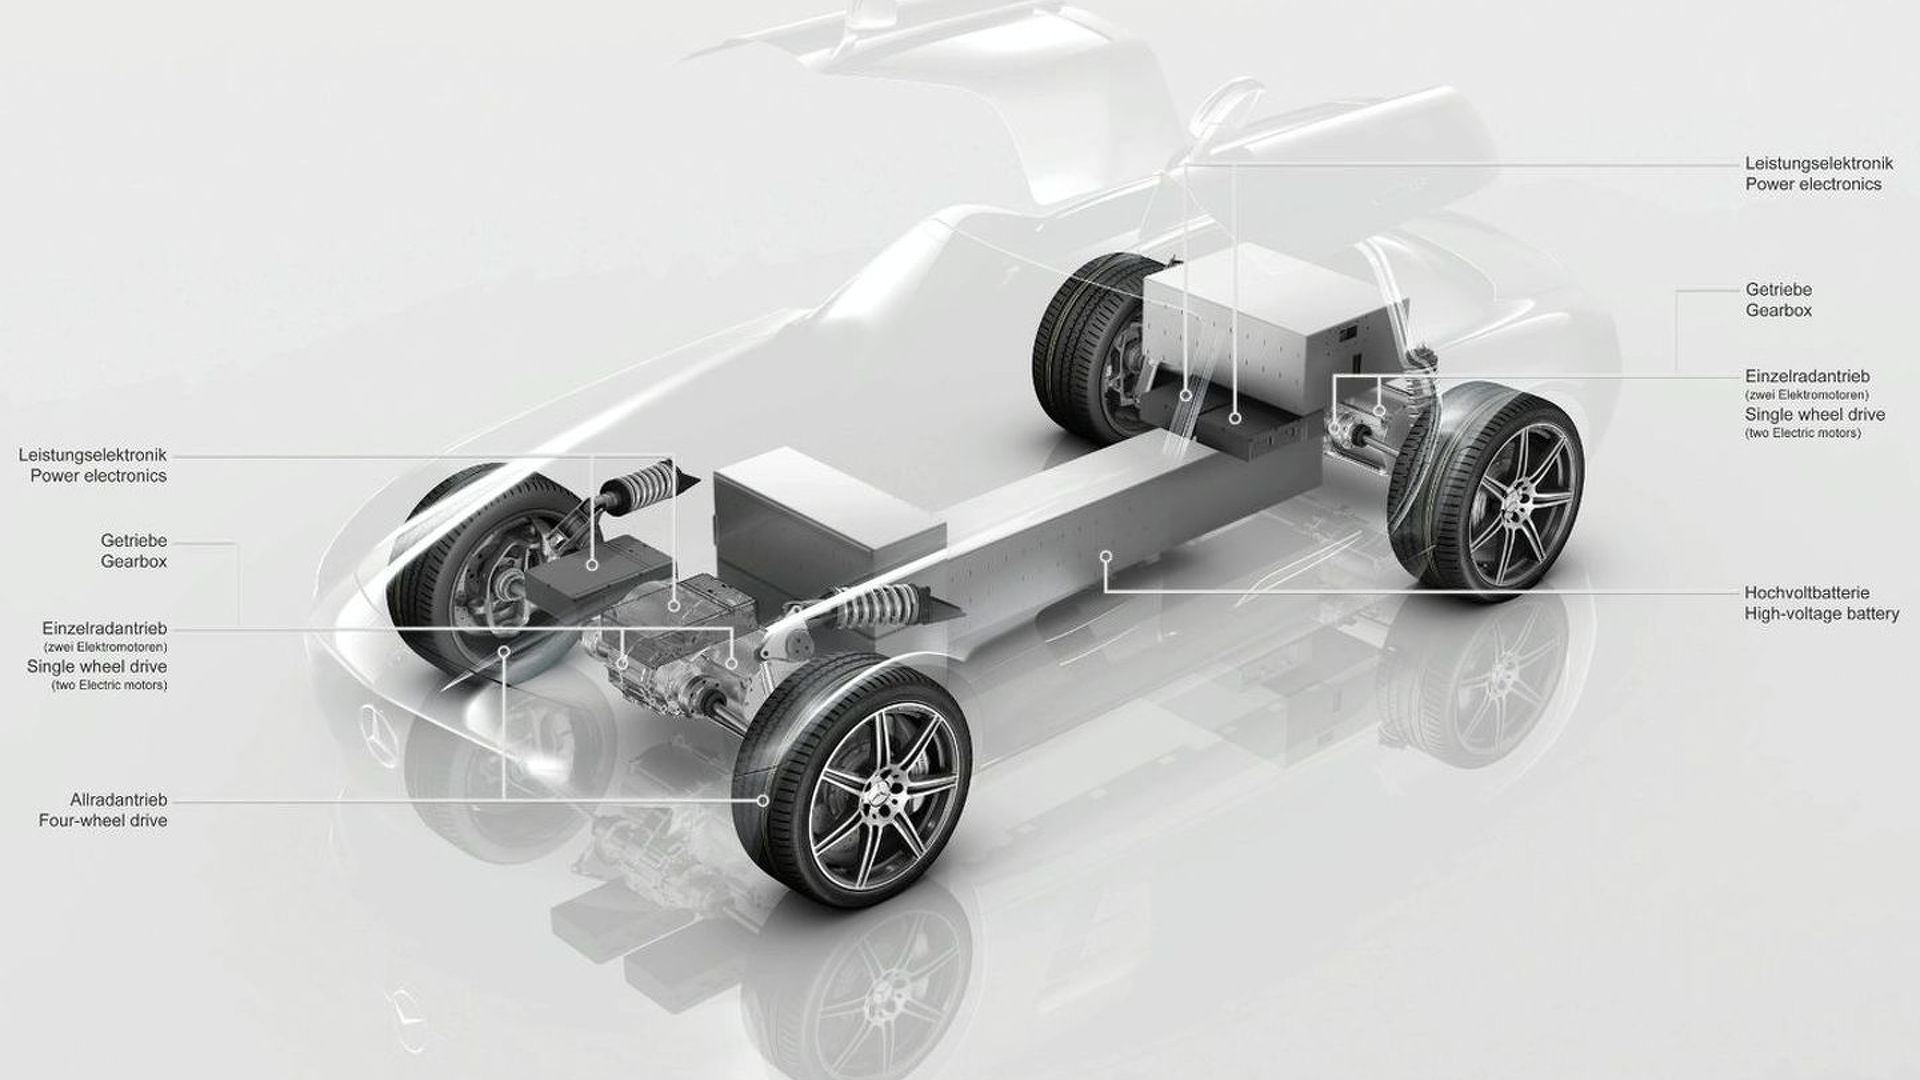 Mercedes announces sls amg gullwing electric drive malvernweather Image collections